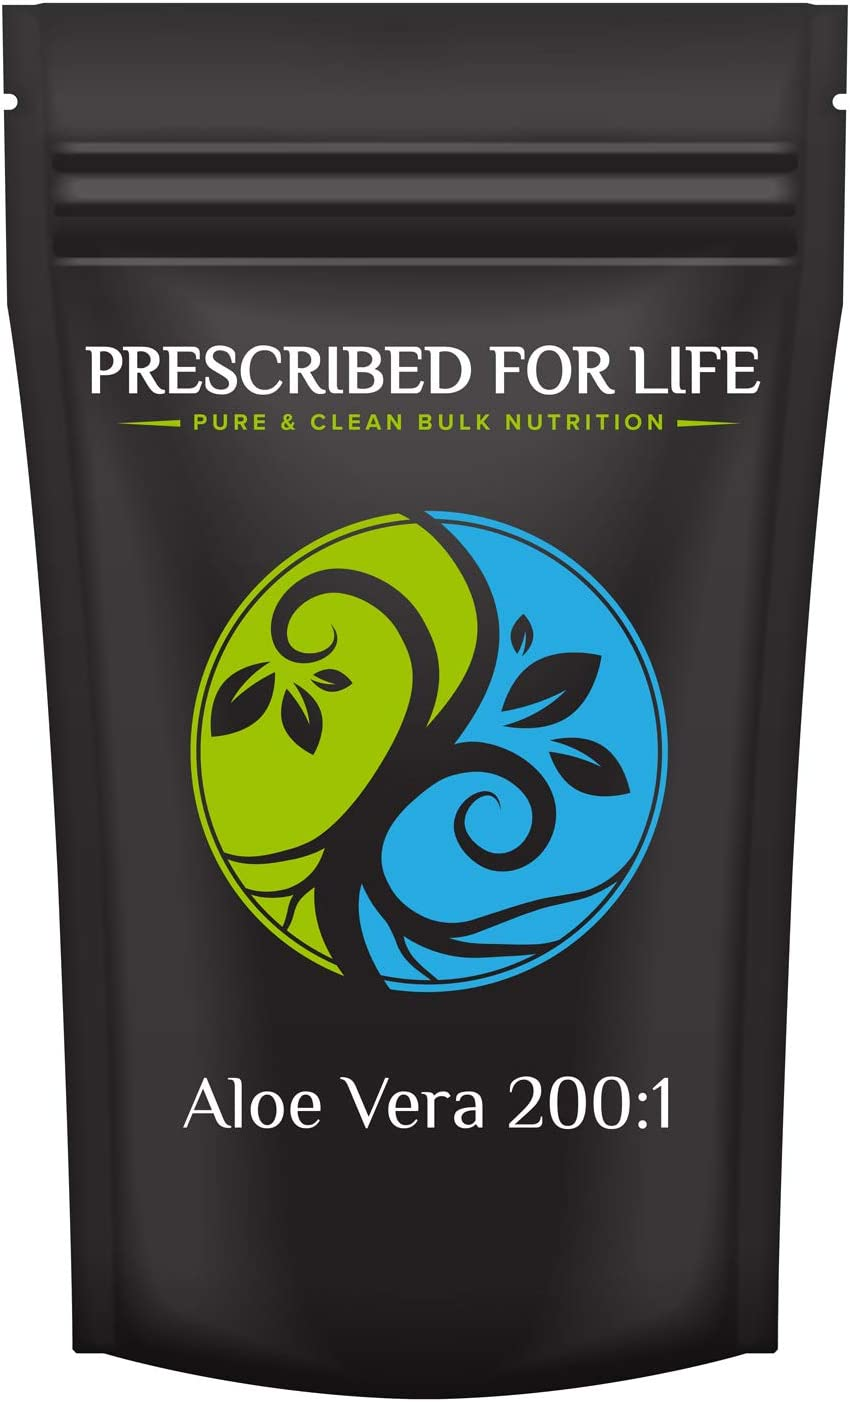 Prescribed for Ranking TOP16 Life Finally popular brand Aloe Vera - Gel Leaf 200:1 P Extract Natural